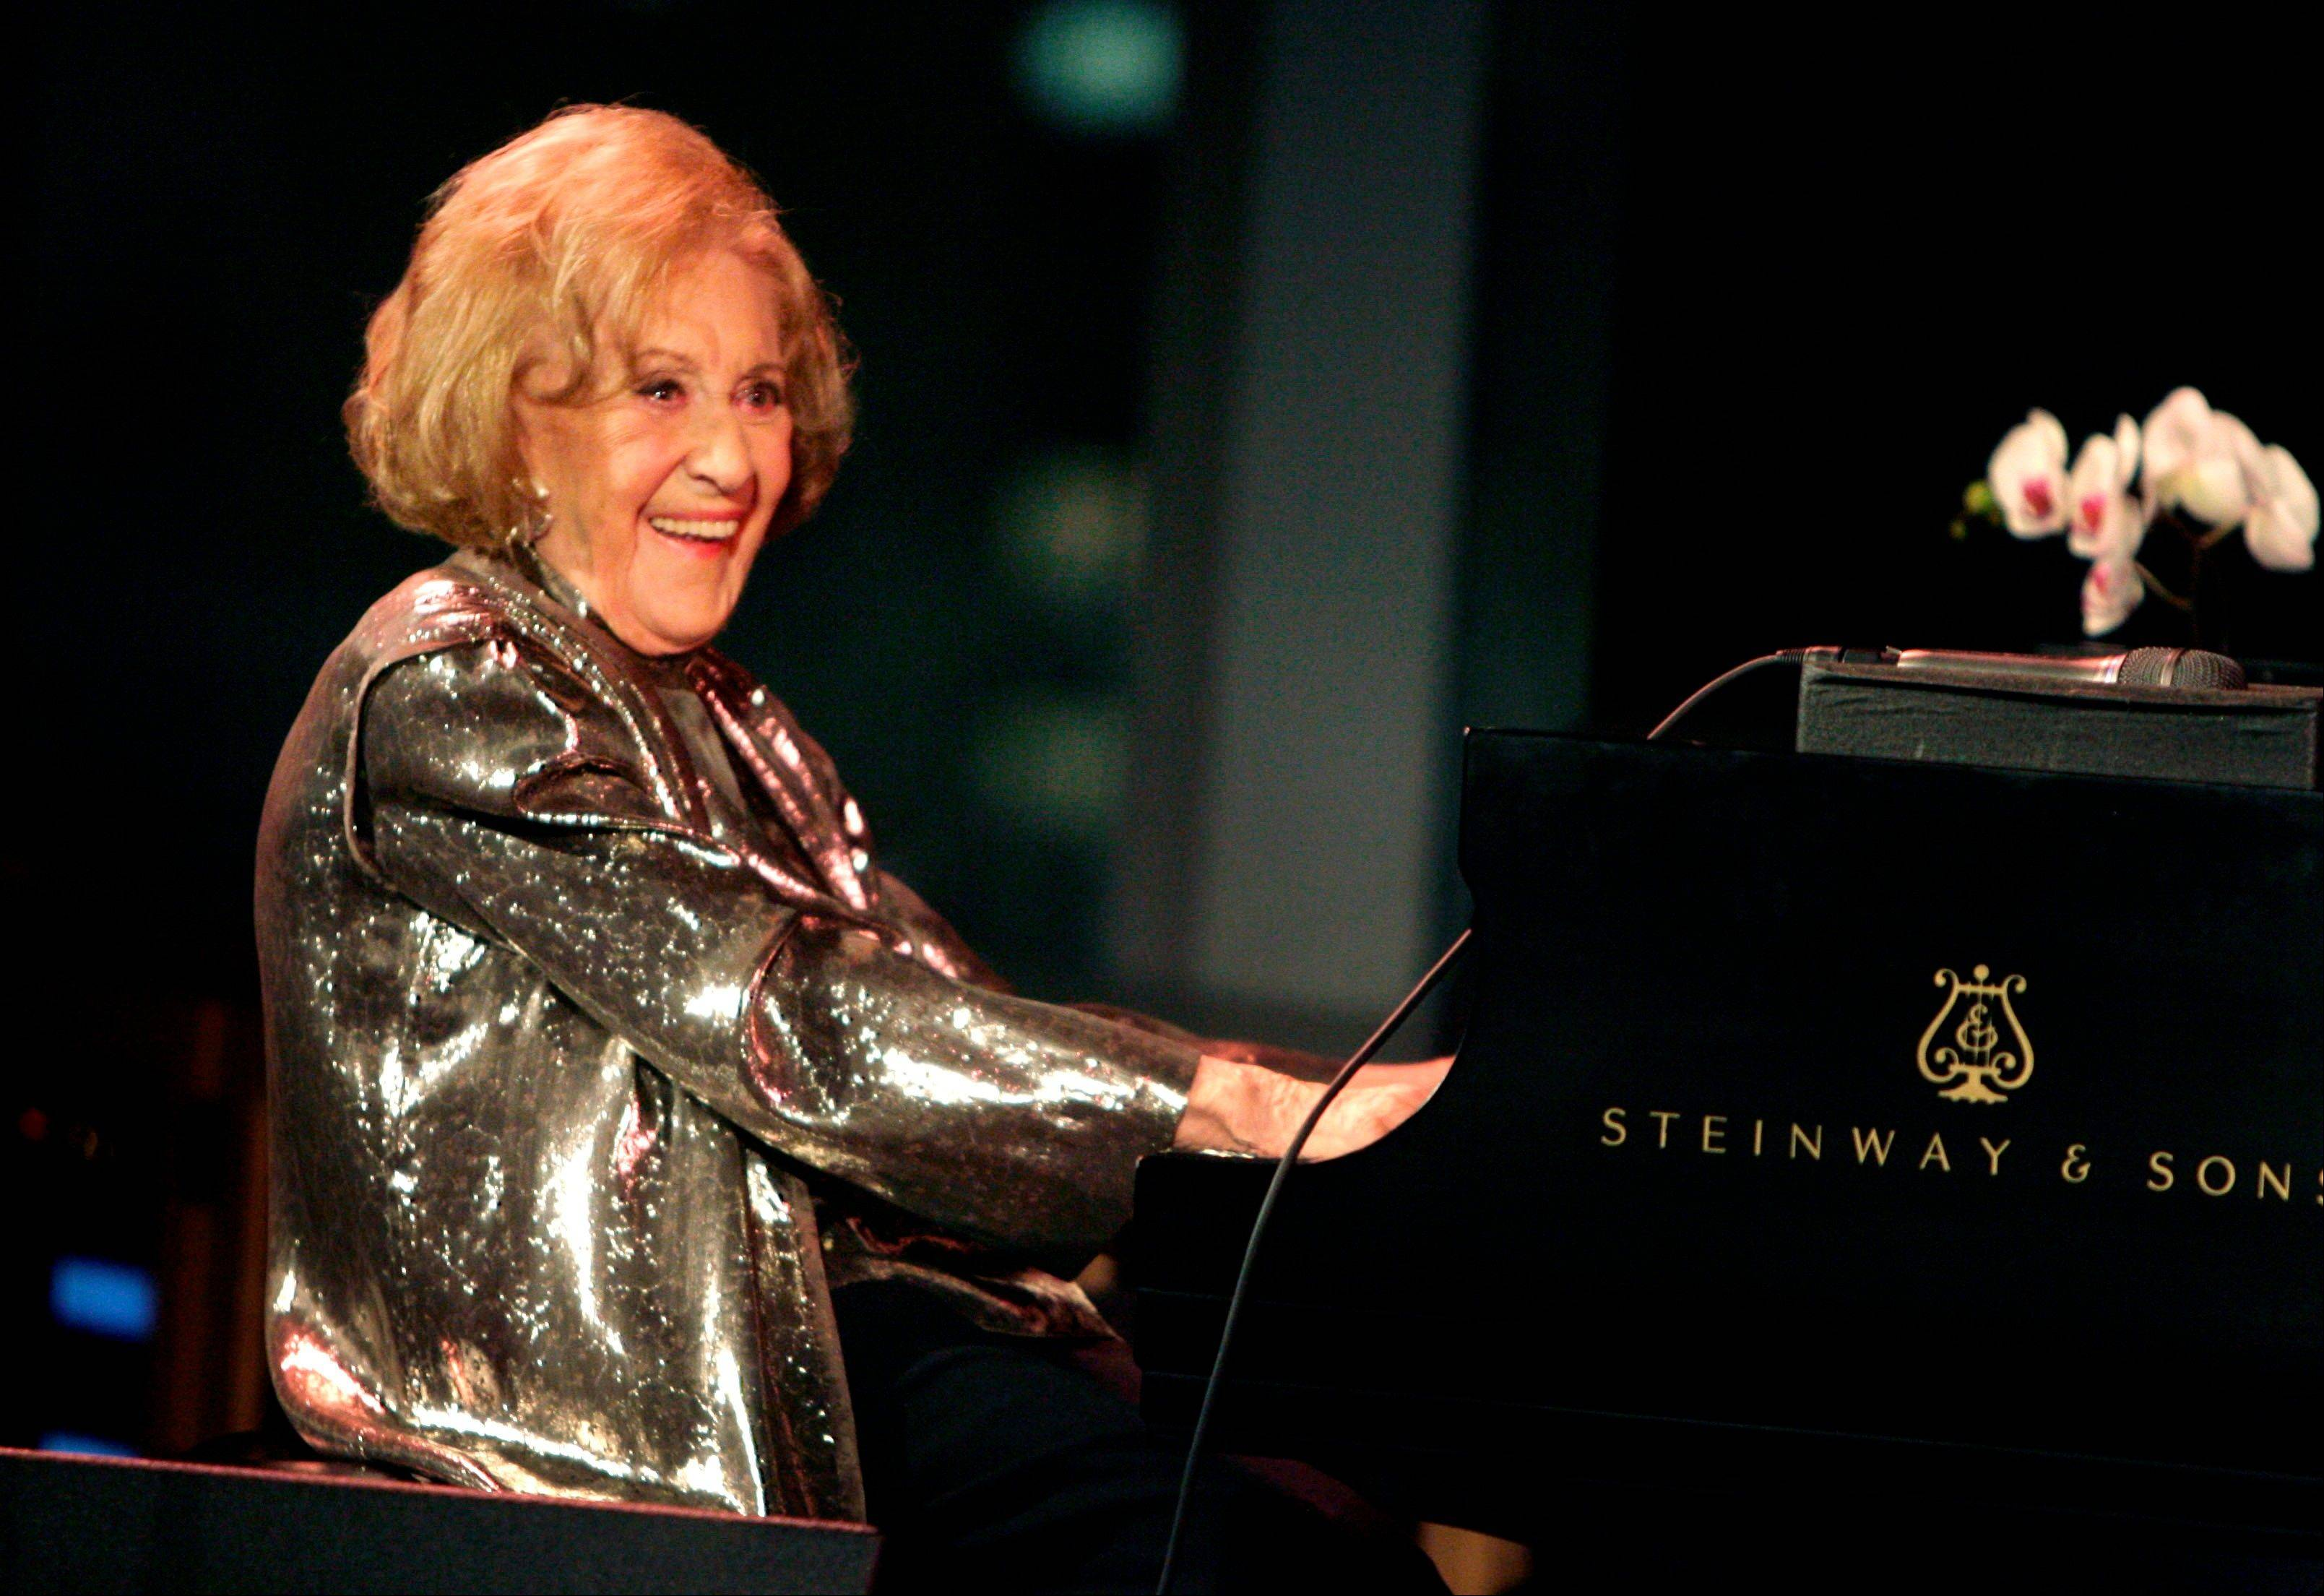 Marian McPartland, legendary jazz pianist and host of the National Public Radio show �Piano Jazz,� died of natural causes Tuesday at her Port Washington home on Long Island.